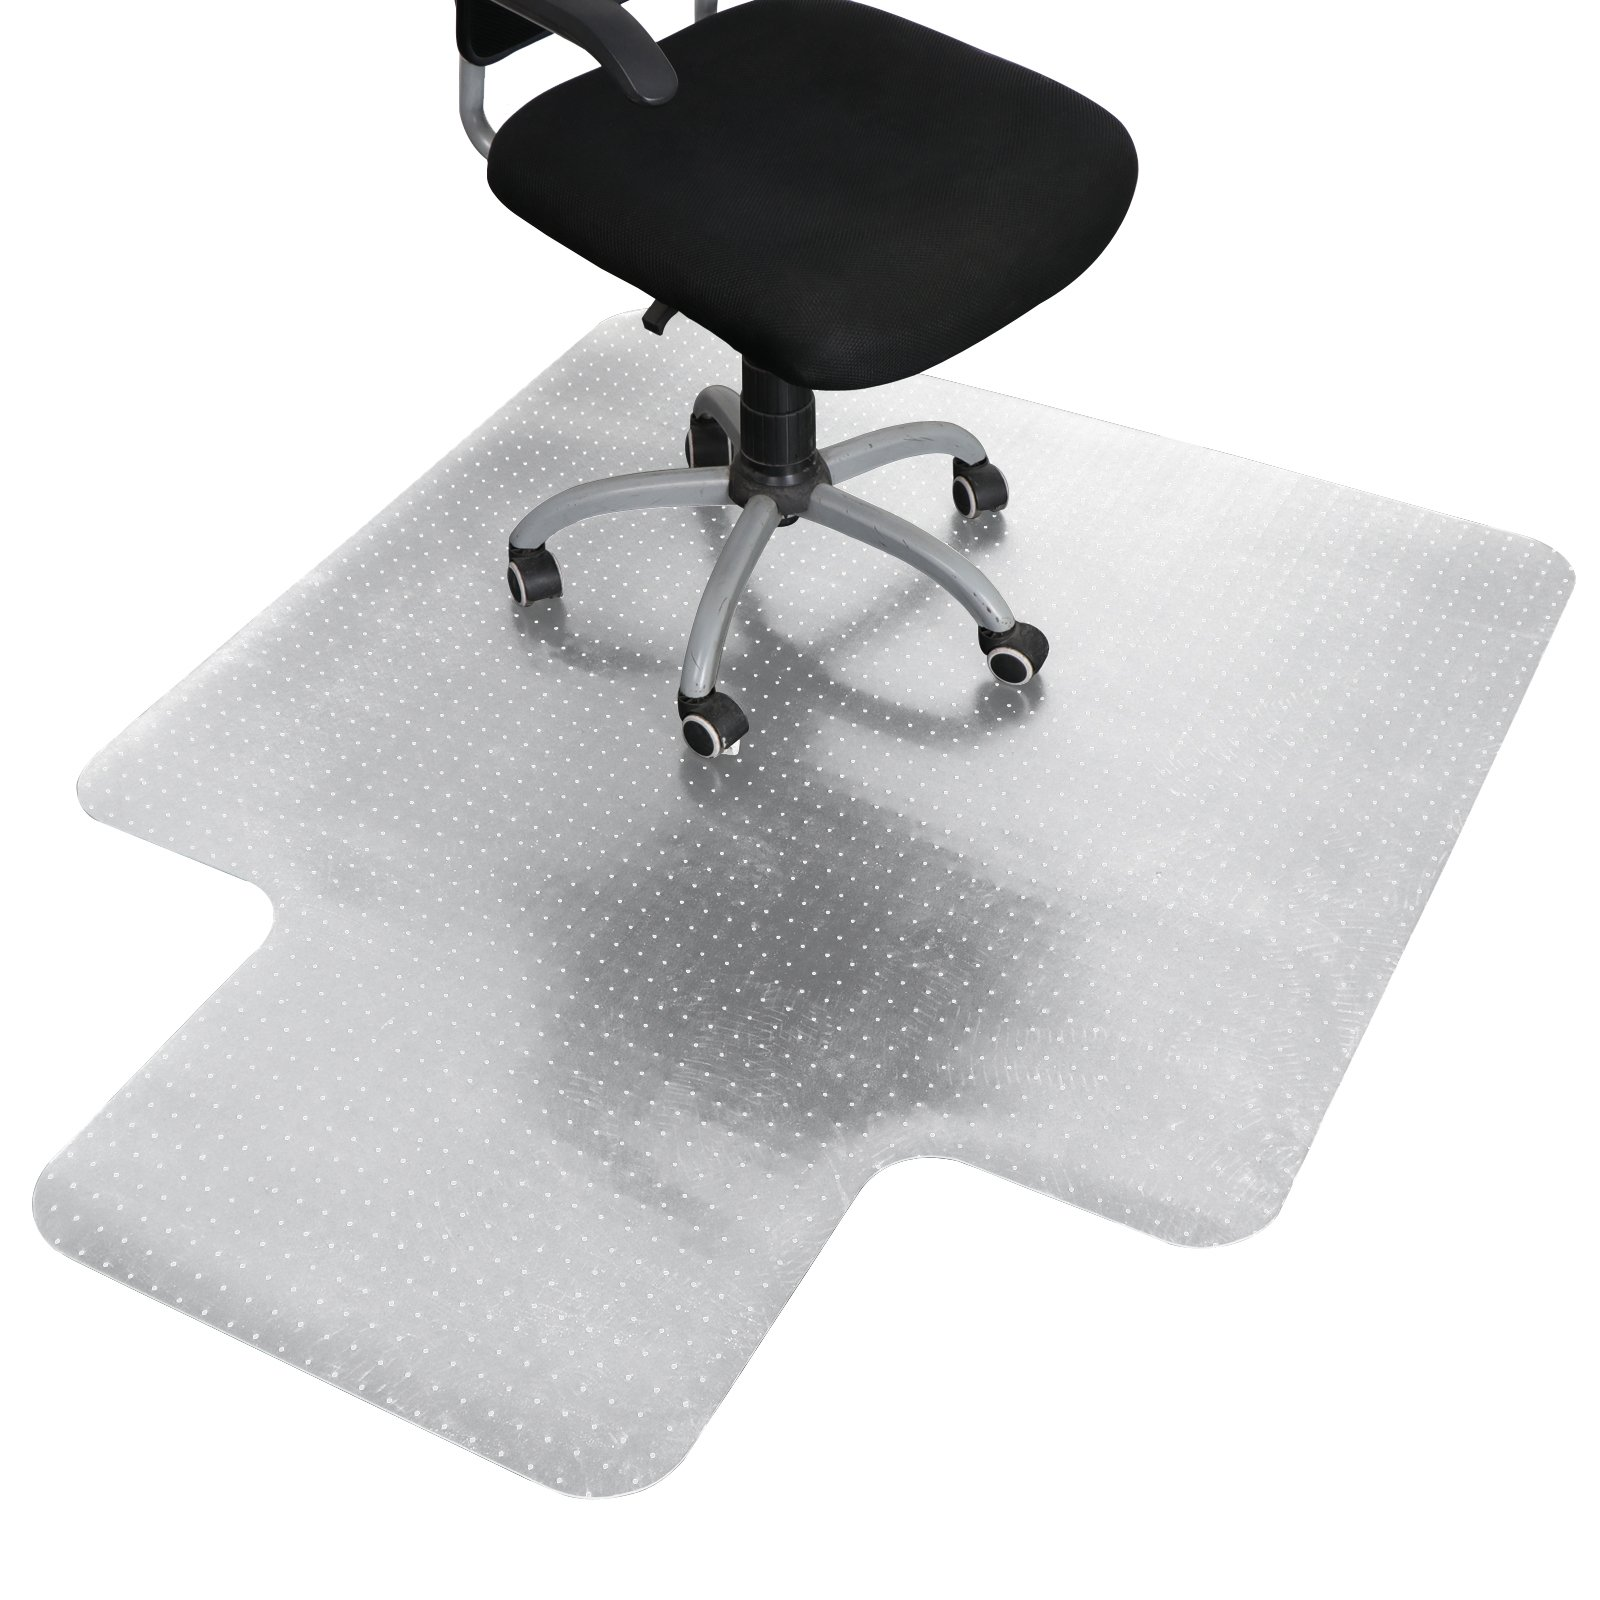 ZENY 48'' x 60'' Office Chair Mat for Carpet Floor,1/8'' Thick PVC Polycarbonate Computer Desk Floor Mats W/Lip,Home Office Floot Protector